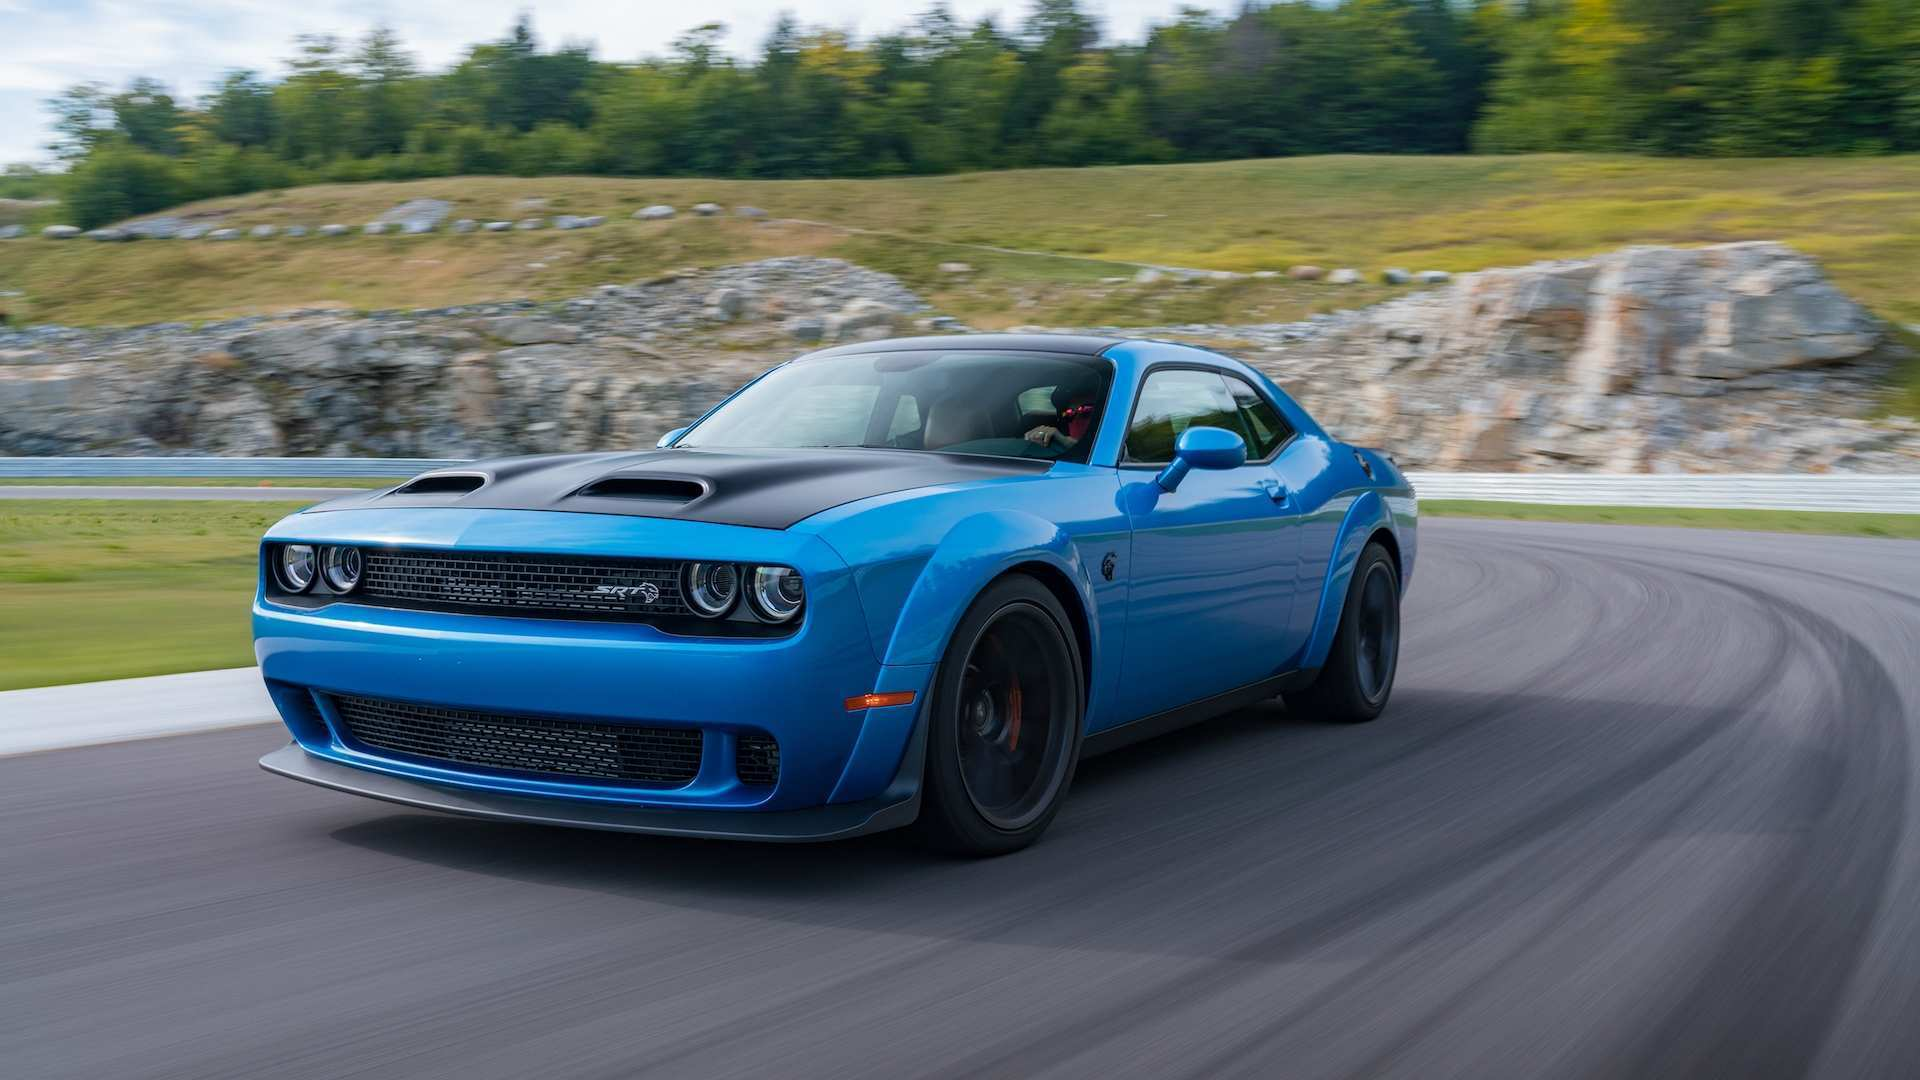 79 All New 2019 Challenger Srt8 Hellcat Release Date And Concept